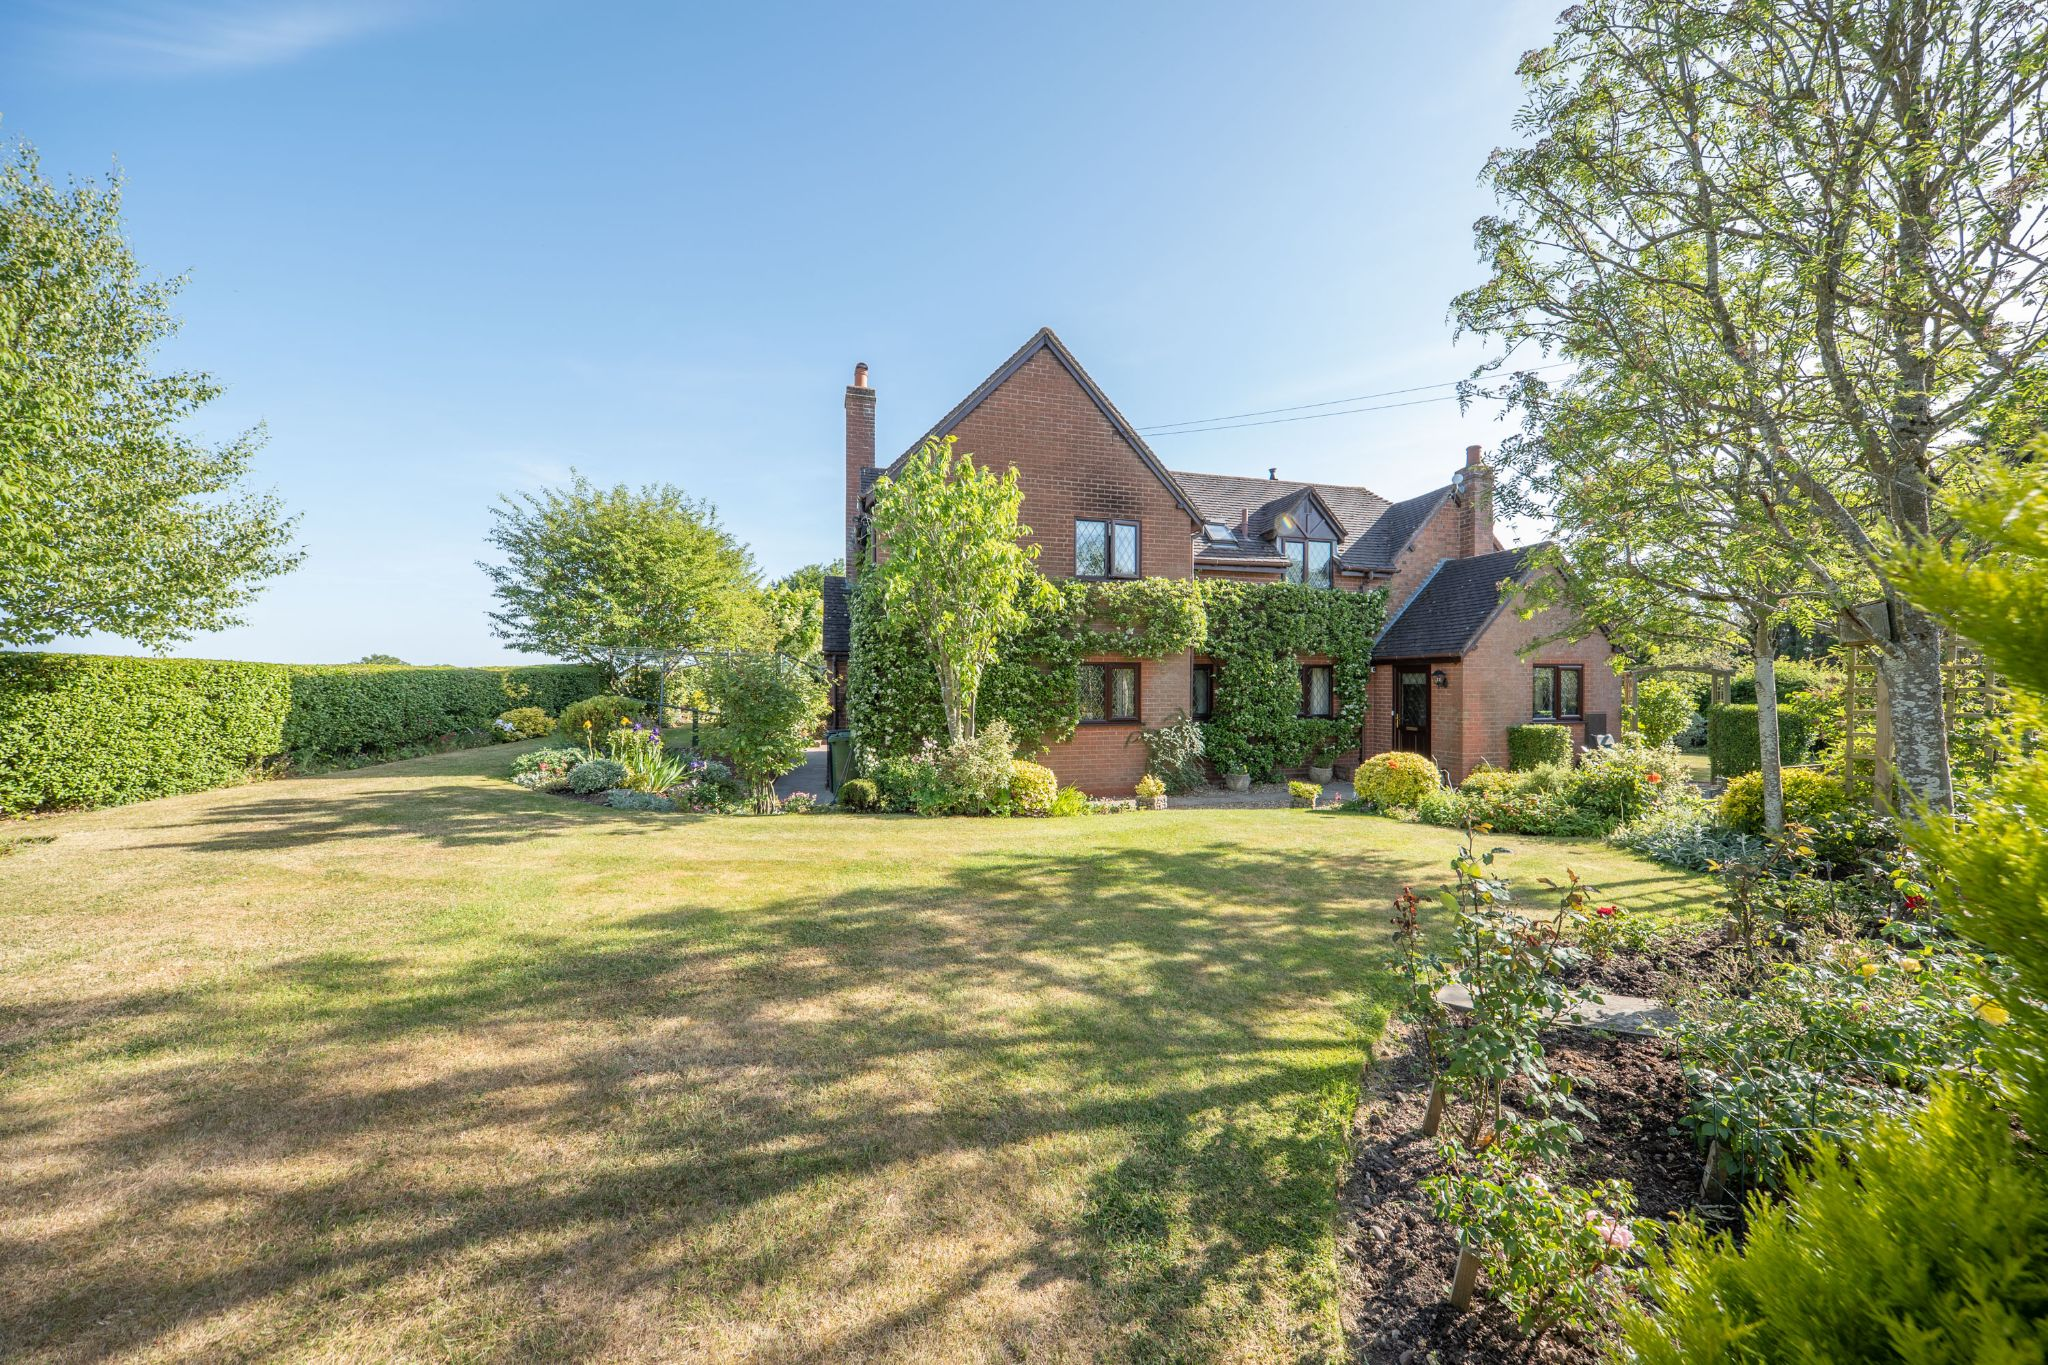 4 bedroom detached house For Sale in Cookhill, Alcester - Property photograph